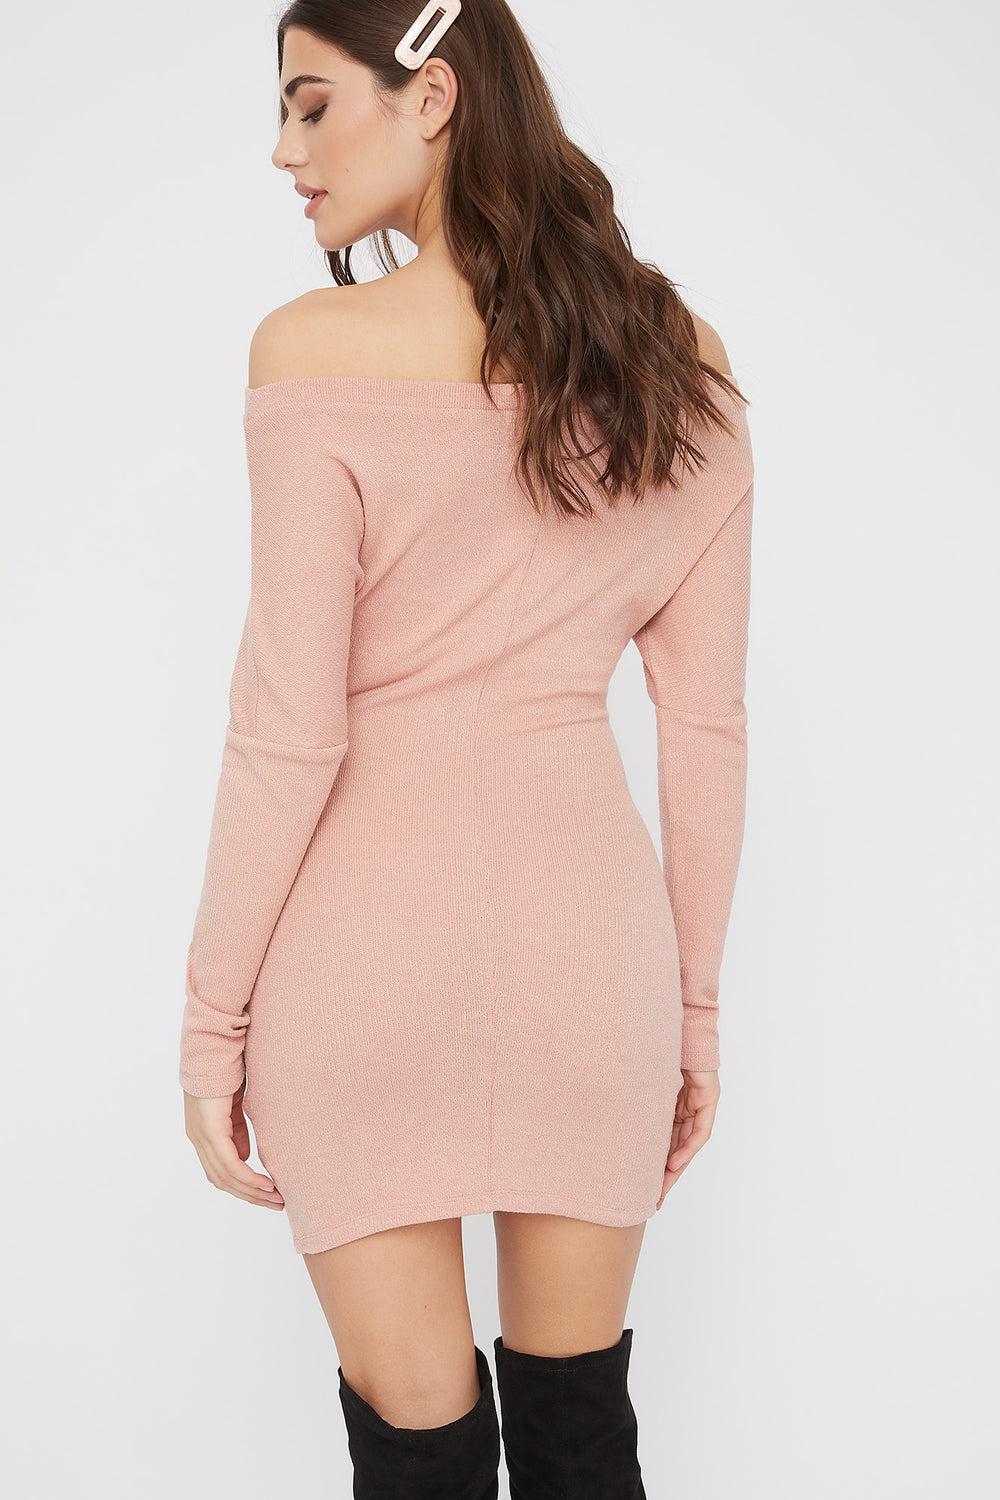 Ribbed Off The Shoulder Tie Front Mini Dress Dusty Rose